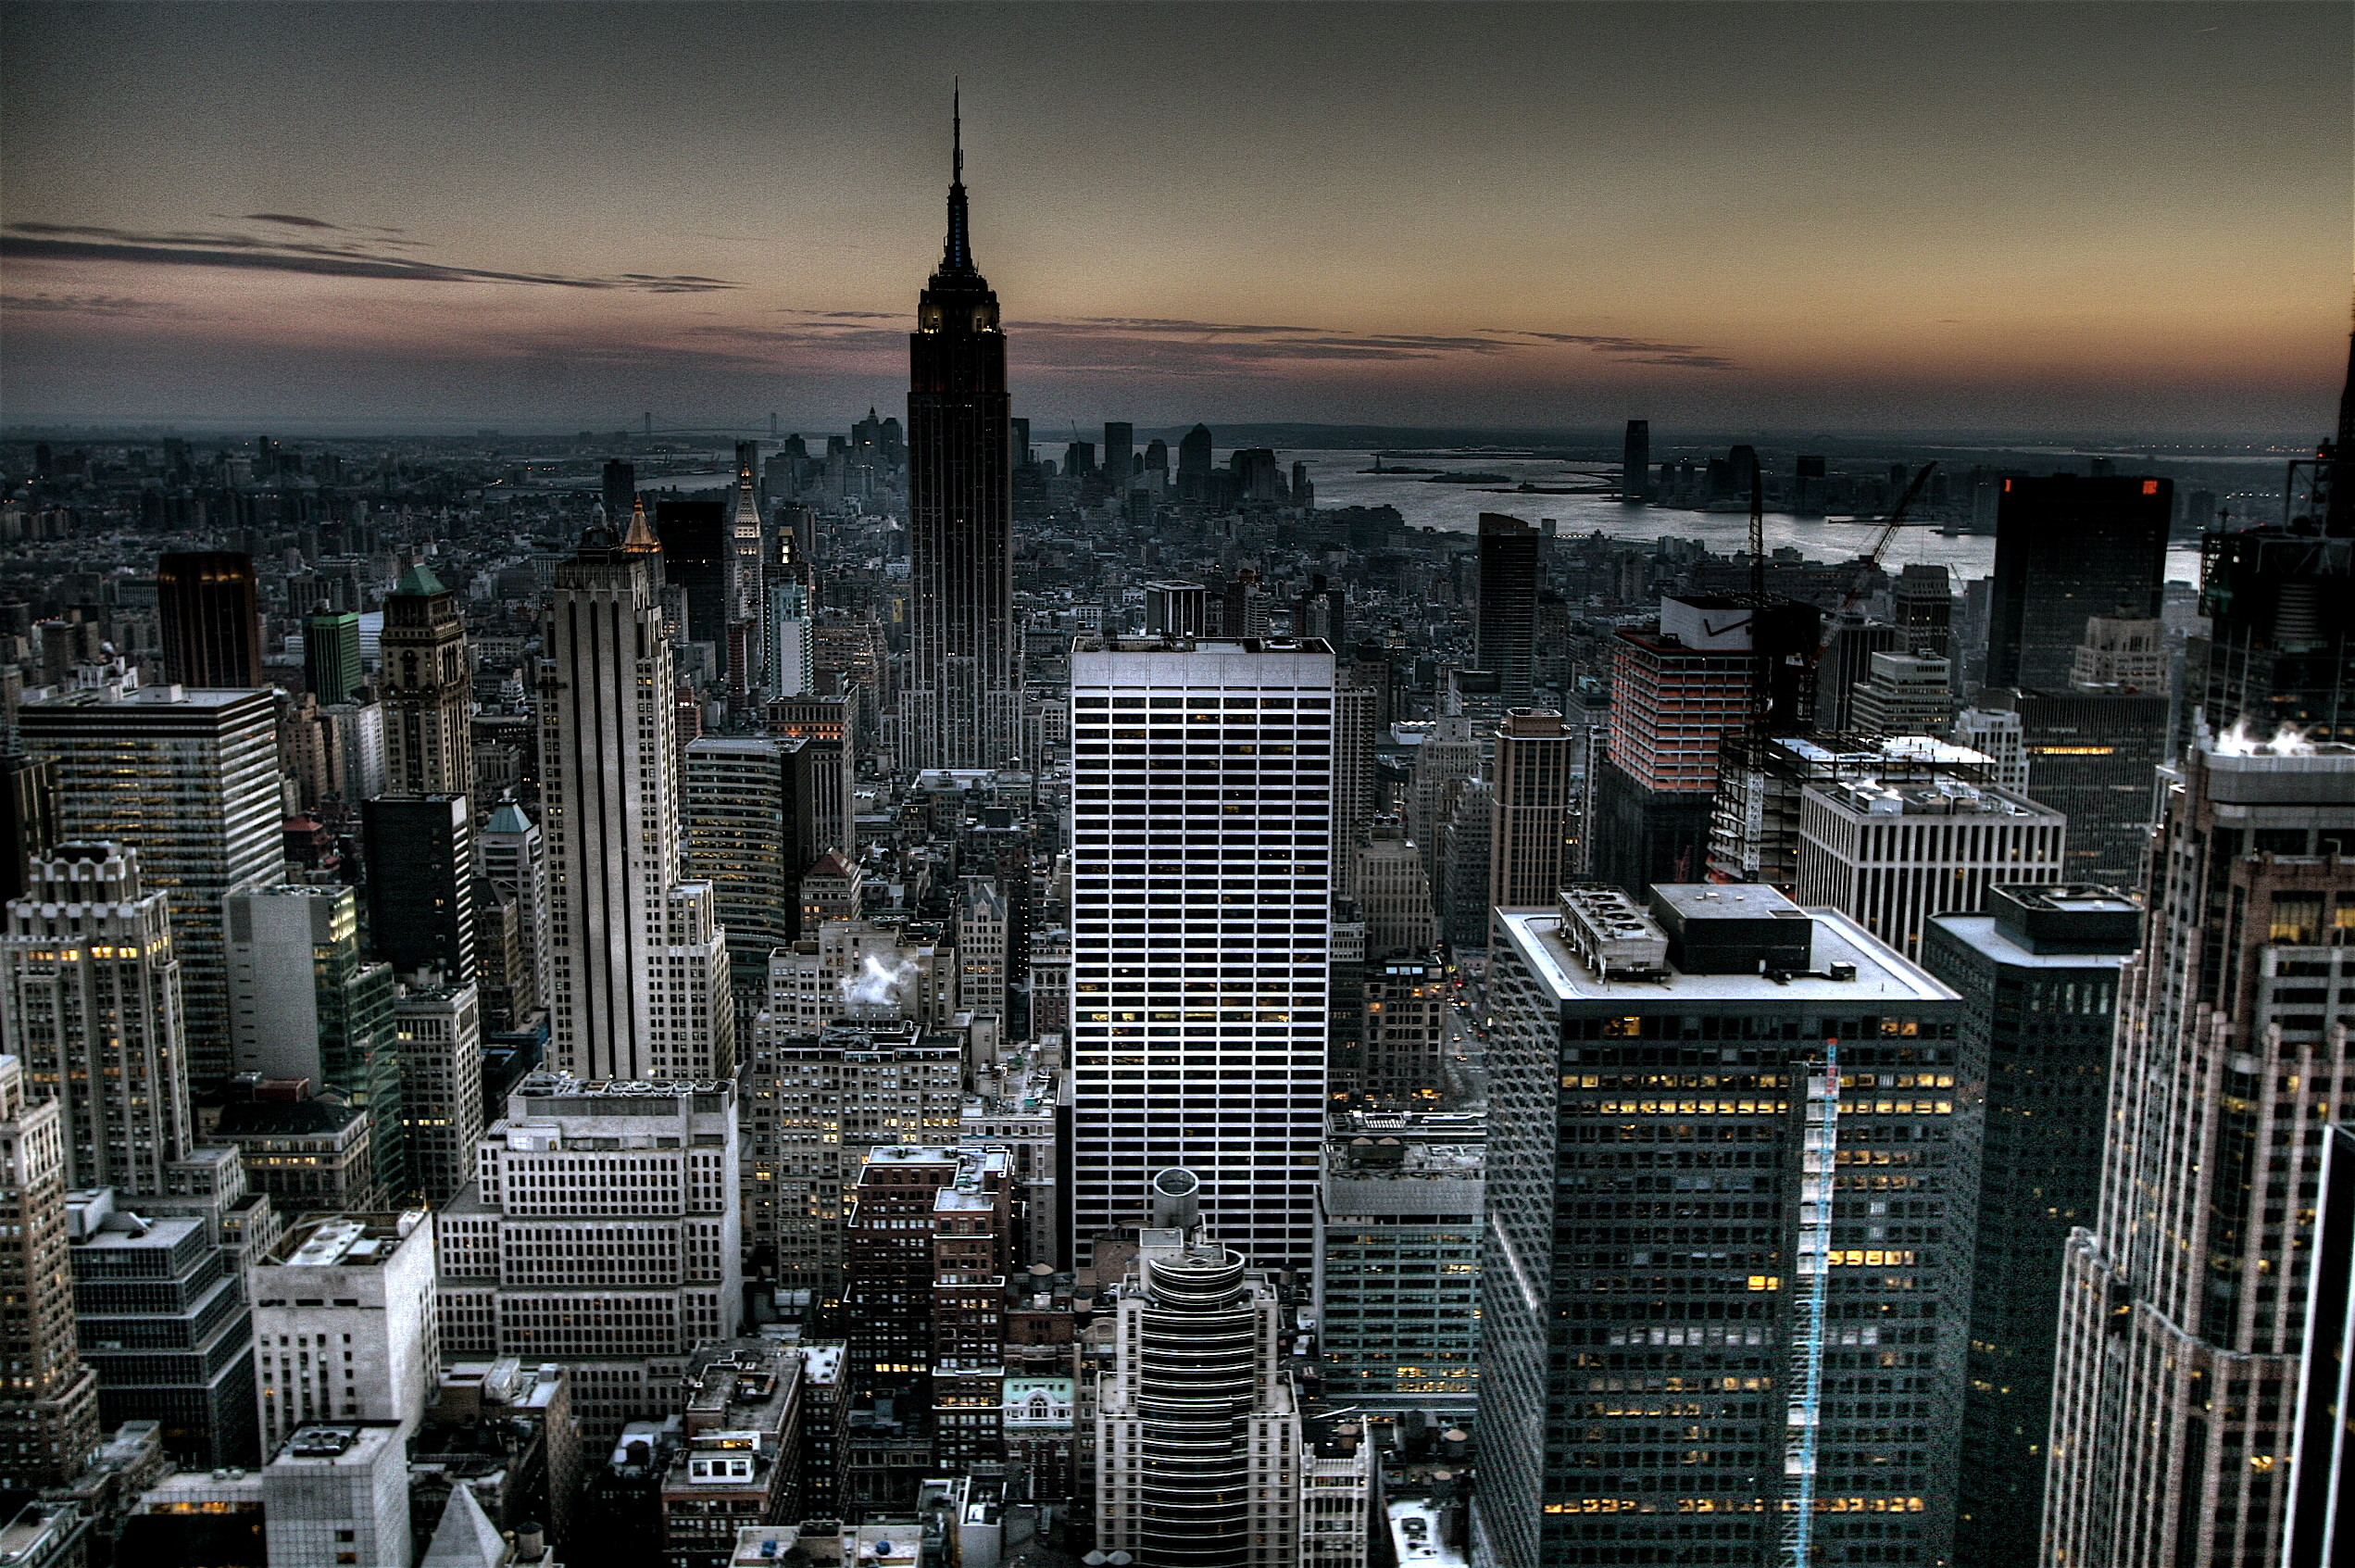 2543x1693 Hd Wallpapers New York City - image #775431